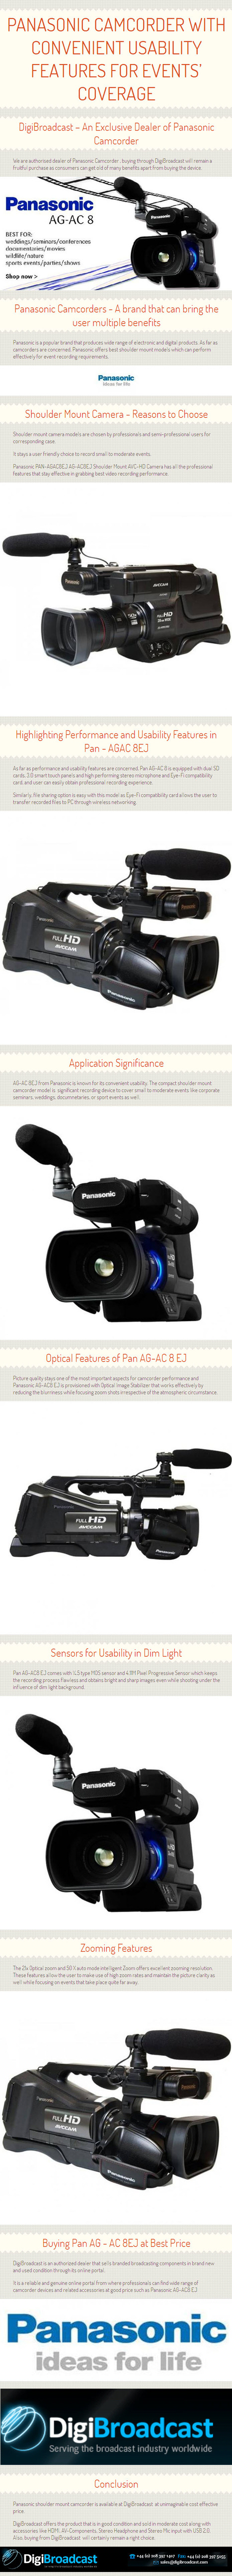 Panasonic Camcorder with Convenient Usability Features for Events' Coverage – By www.digibroadcast.com | digibroadcast | Scoop.it